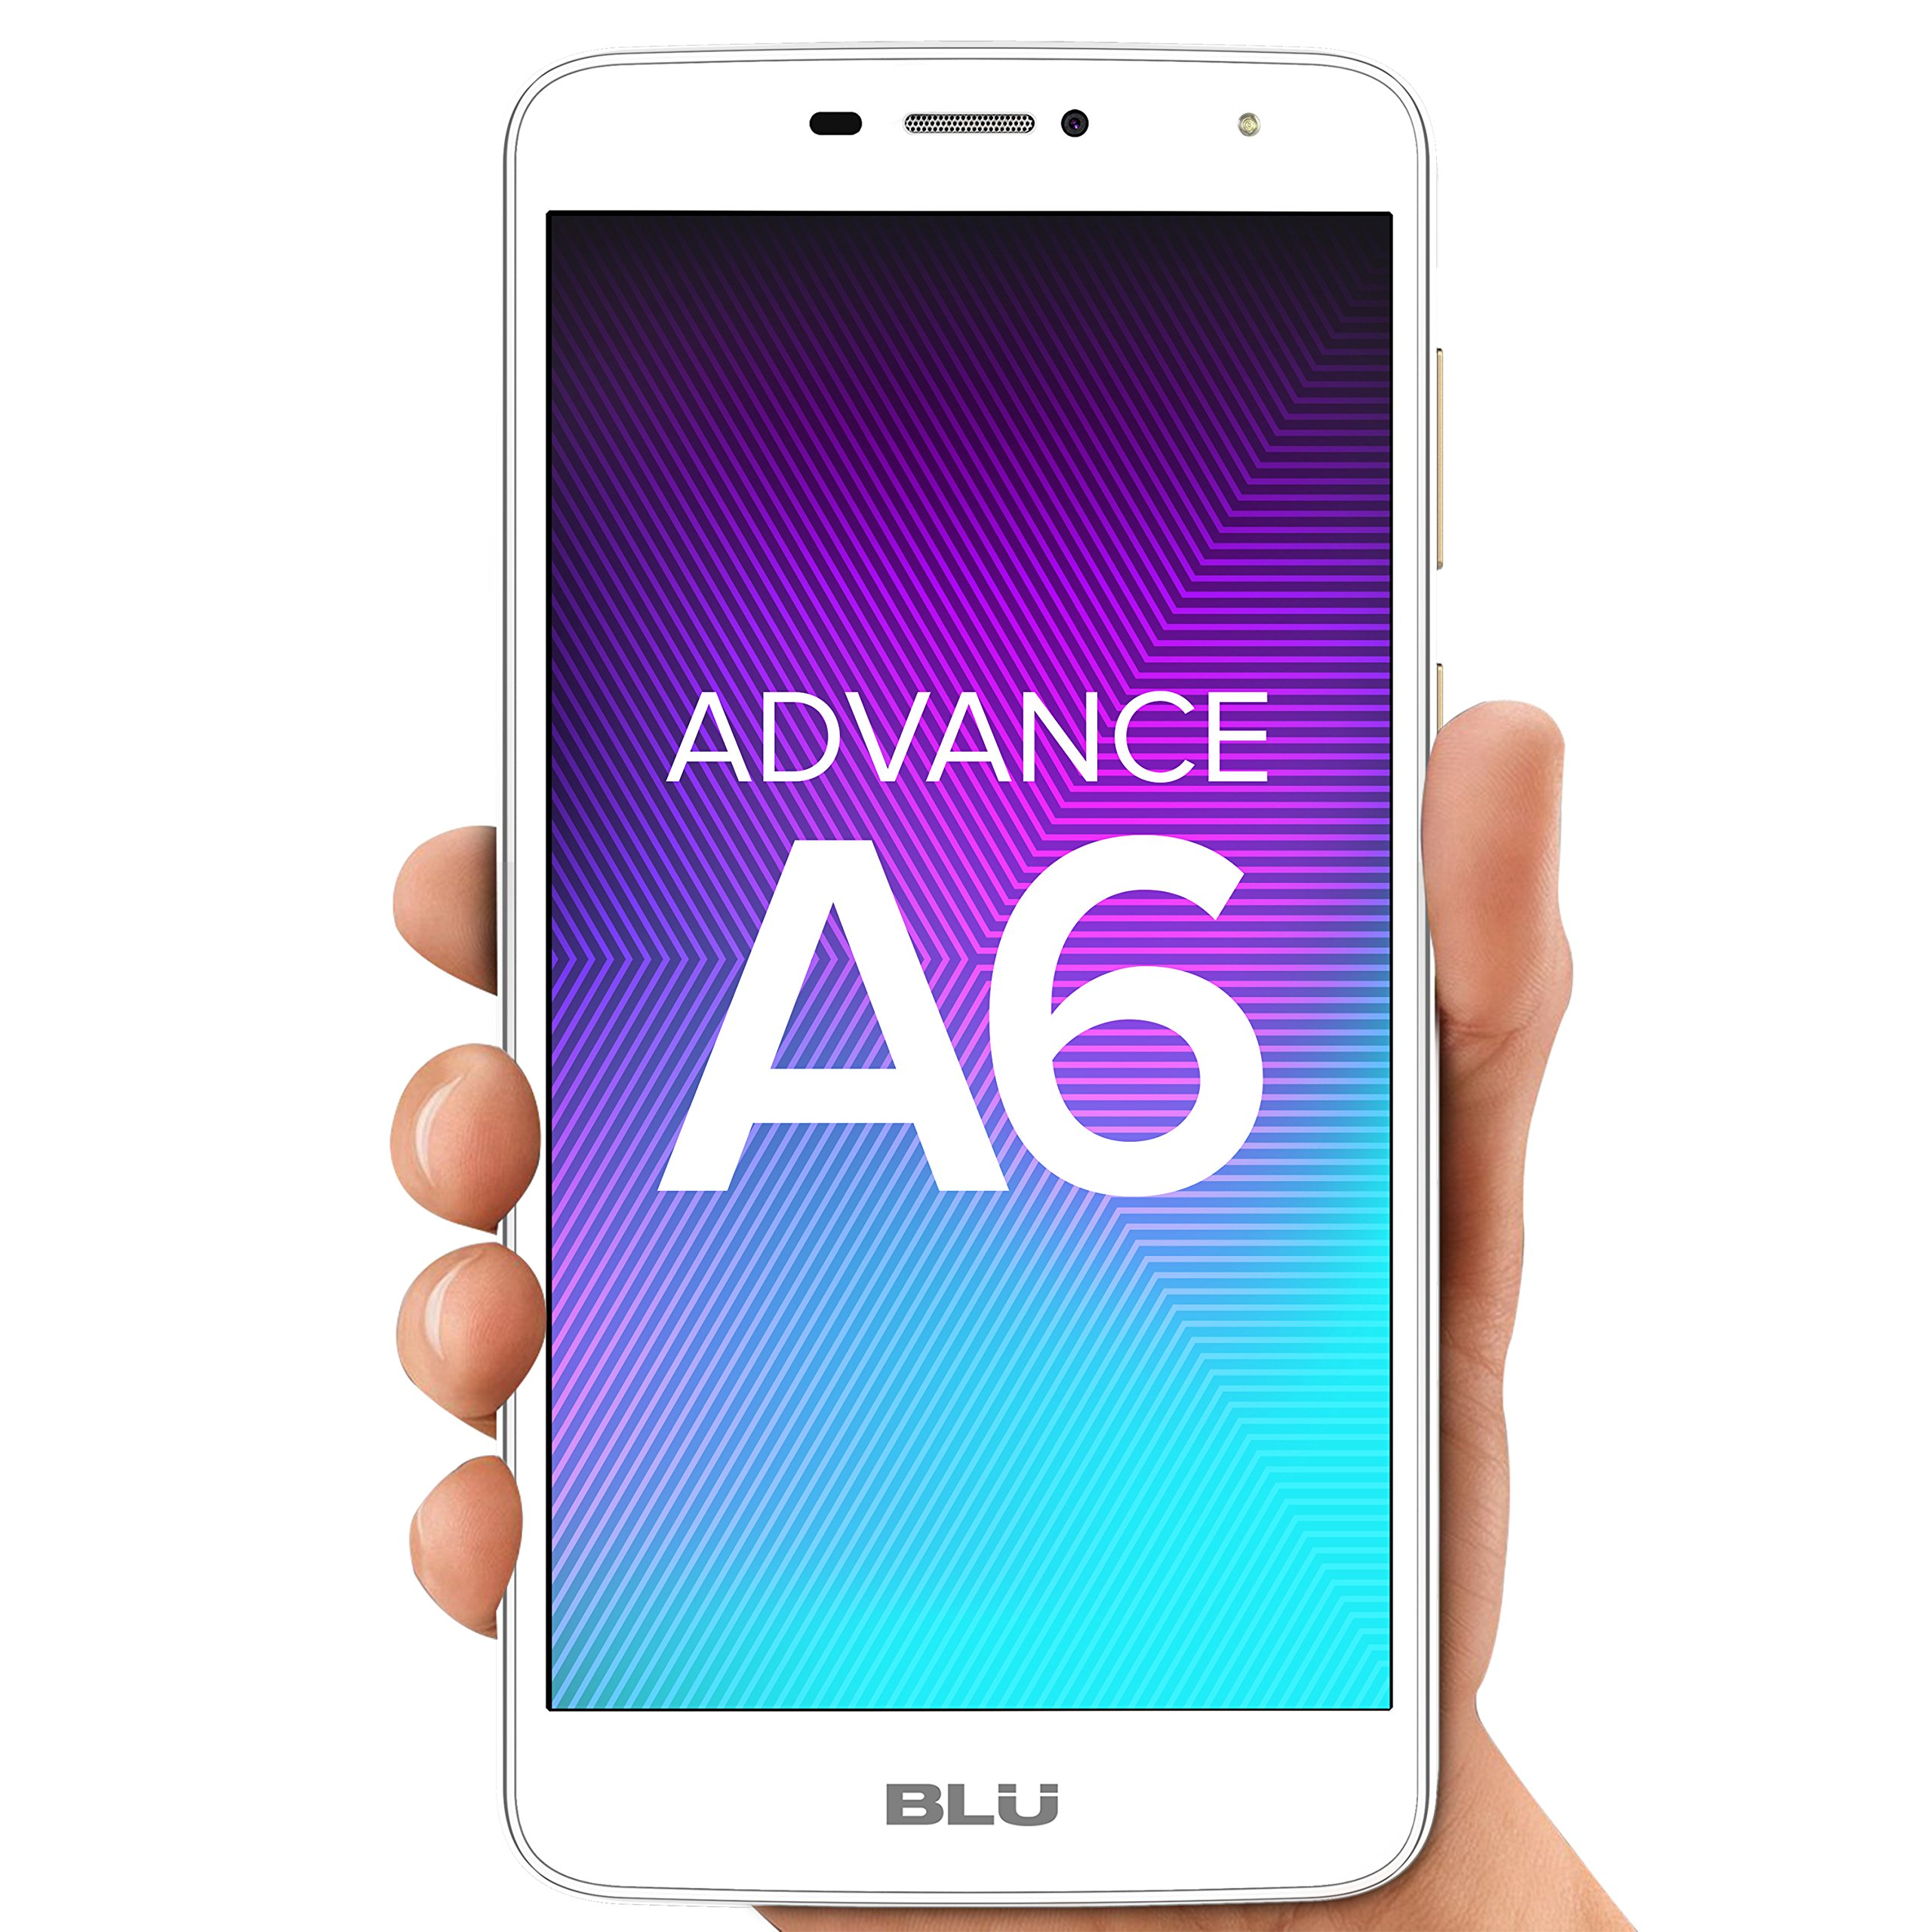 "BLU Advance A6 -Unlocked Dual Sim Smartphone - 6.0"" HD Display - Gold"